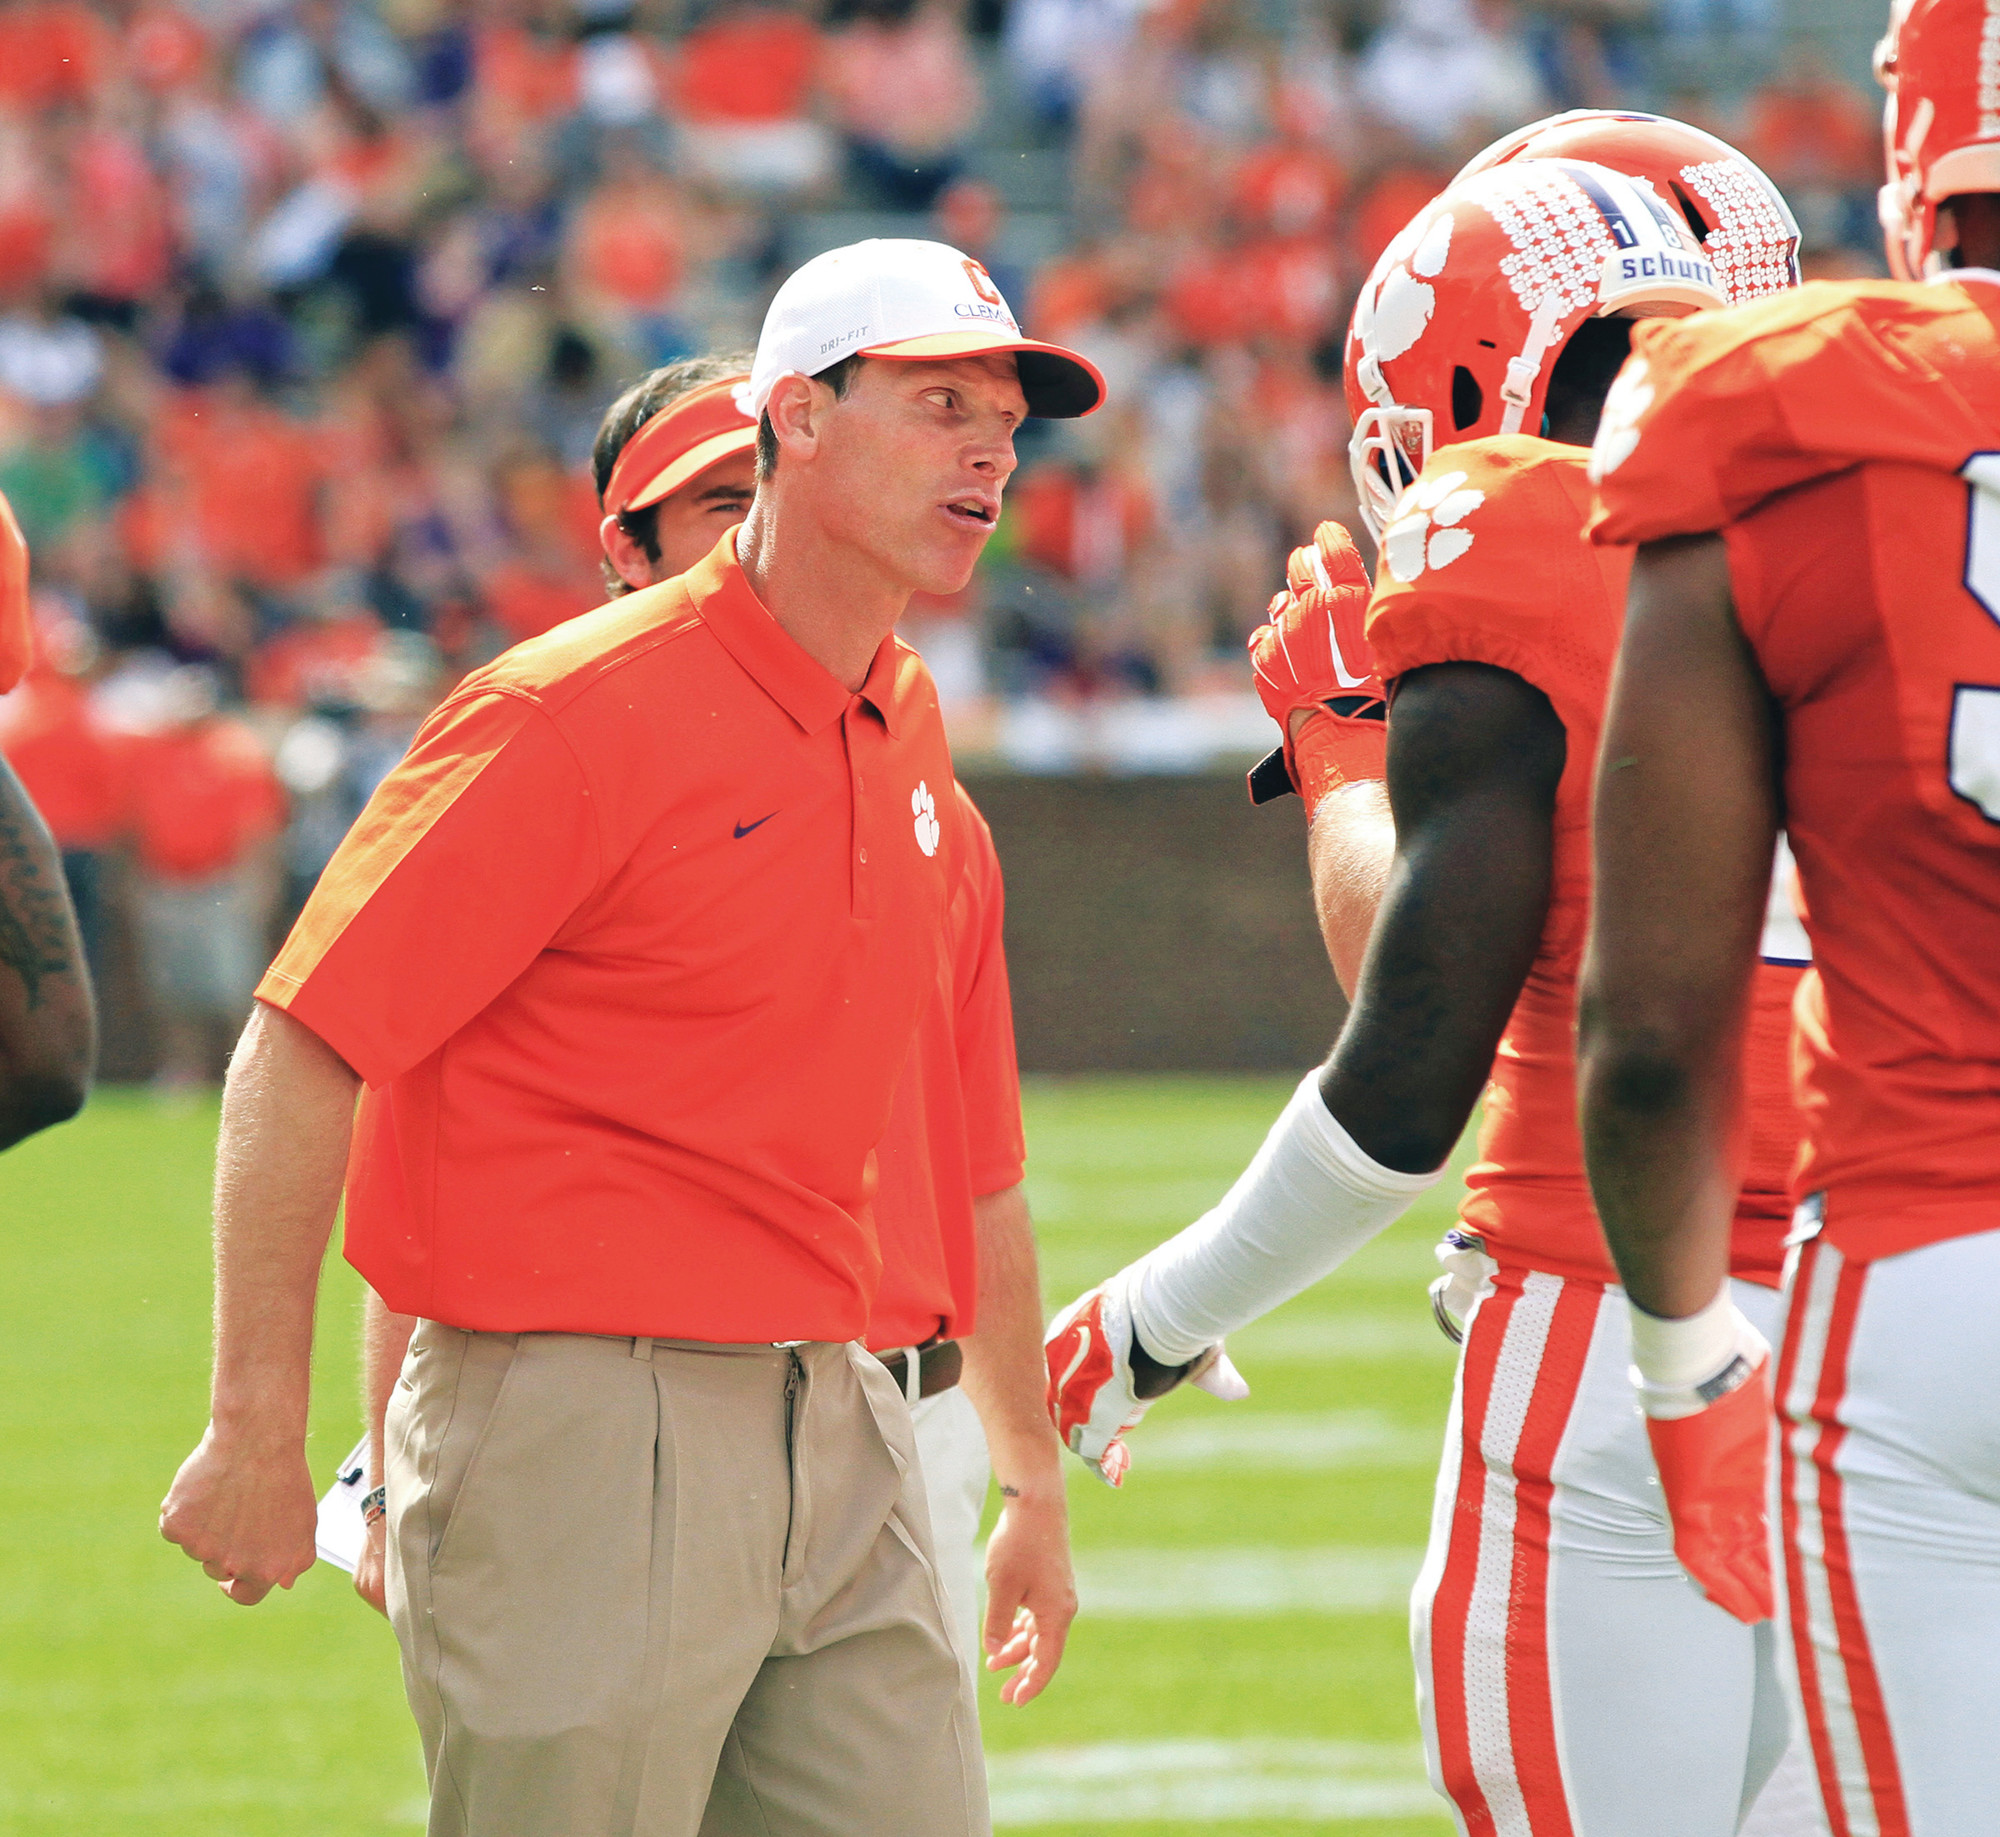 Clemson defensive coordinator Brent Venables, left, gets on a player during Clemson's spring game at Memorial Stadium in Clemson in April. Clemson has made a second major statement this year about how much they want to hold onto Venables. After upping his salary to $2 million a year in February, the school extended the deal to five seasons through 2022 and added retention bonuses that make the package worth $11.6 million.